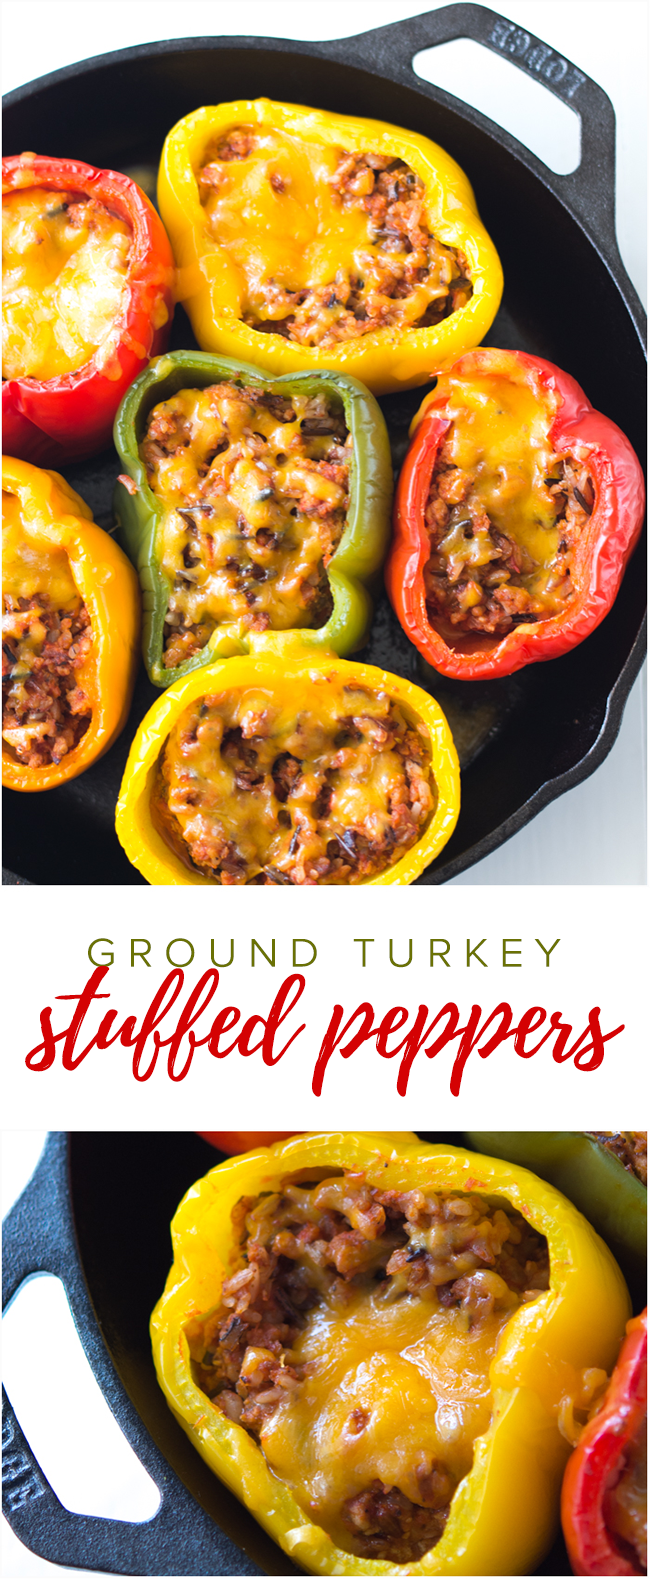 Ground Turkey Stuffed Peppers Dinner Recipes Easy Family Stuffed Peppers Recipes